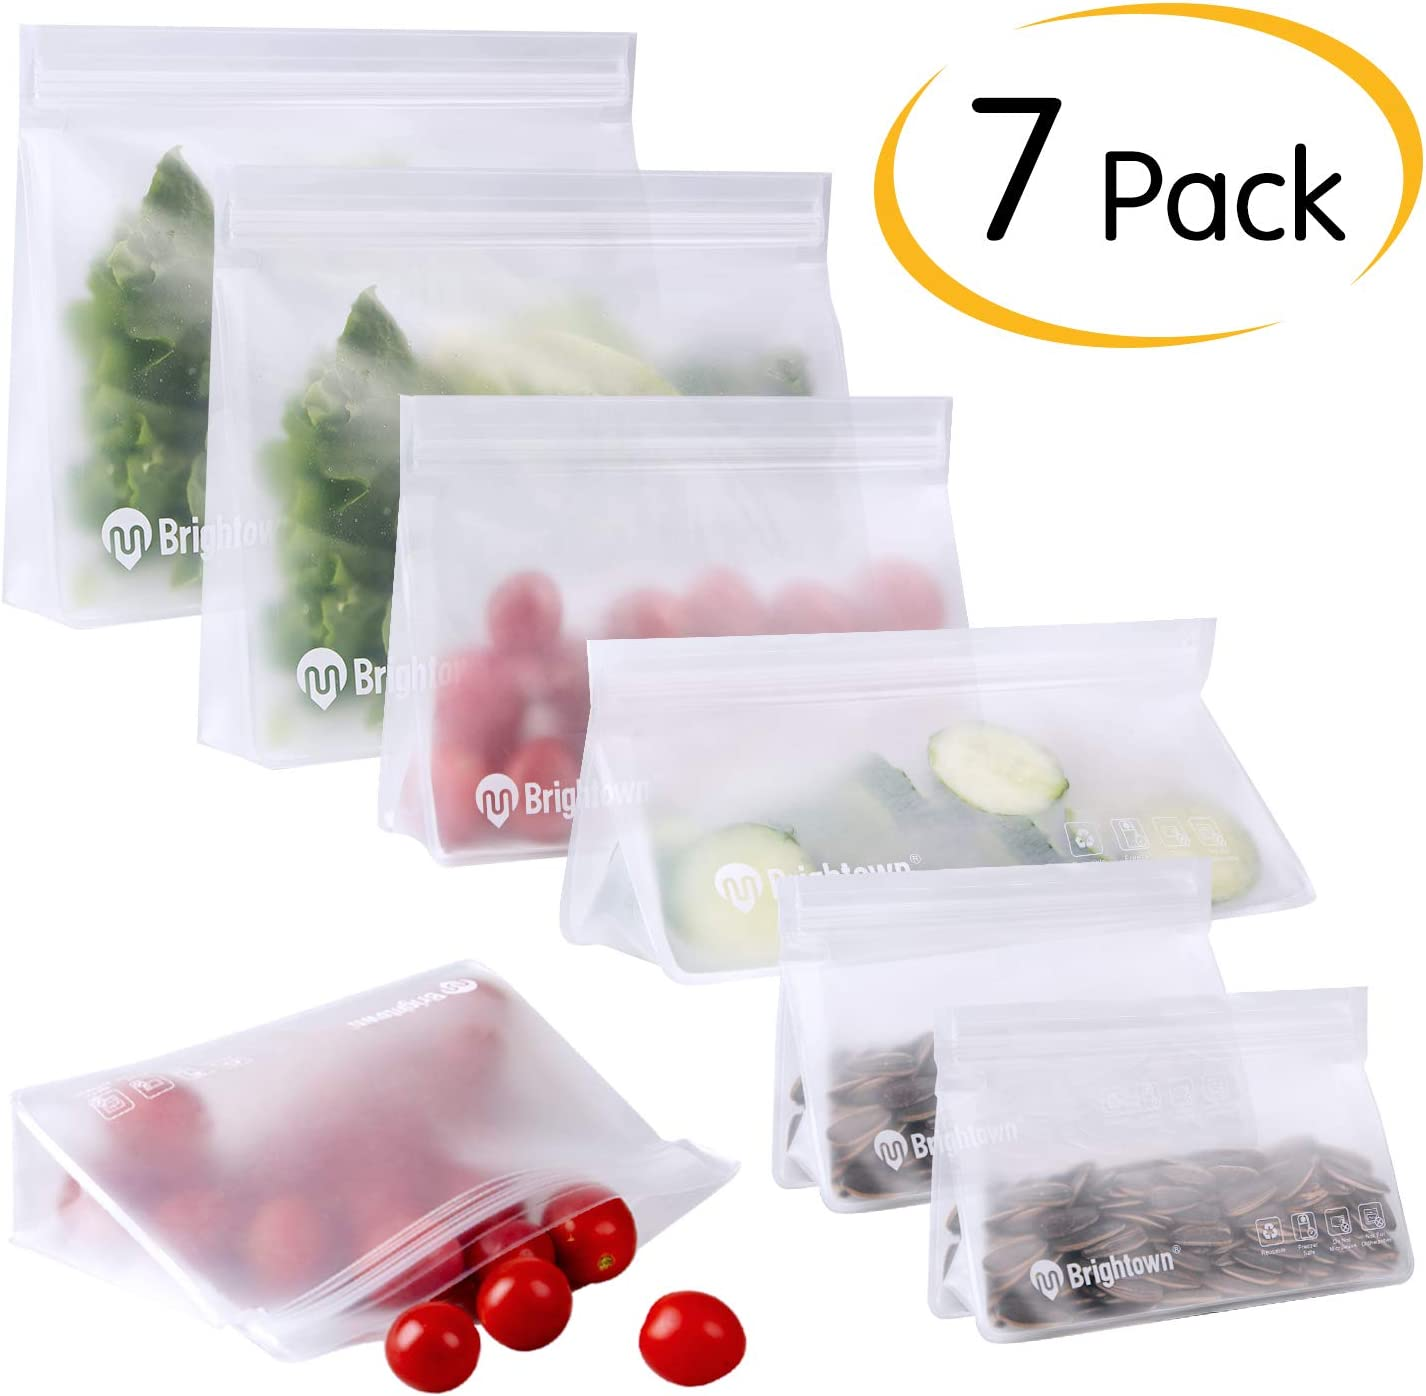 Brightown Reusable Sandwich Bags, 7 Packs Leakproof Reusable Storage Bags Stand-up BPA-Free Ziplock Bags for Food Storage Home Organization Snack Lunch Bag for Travel